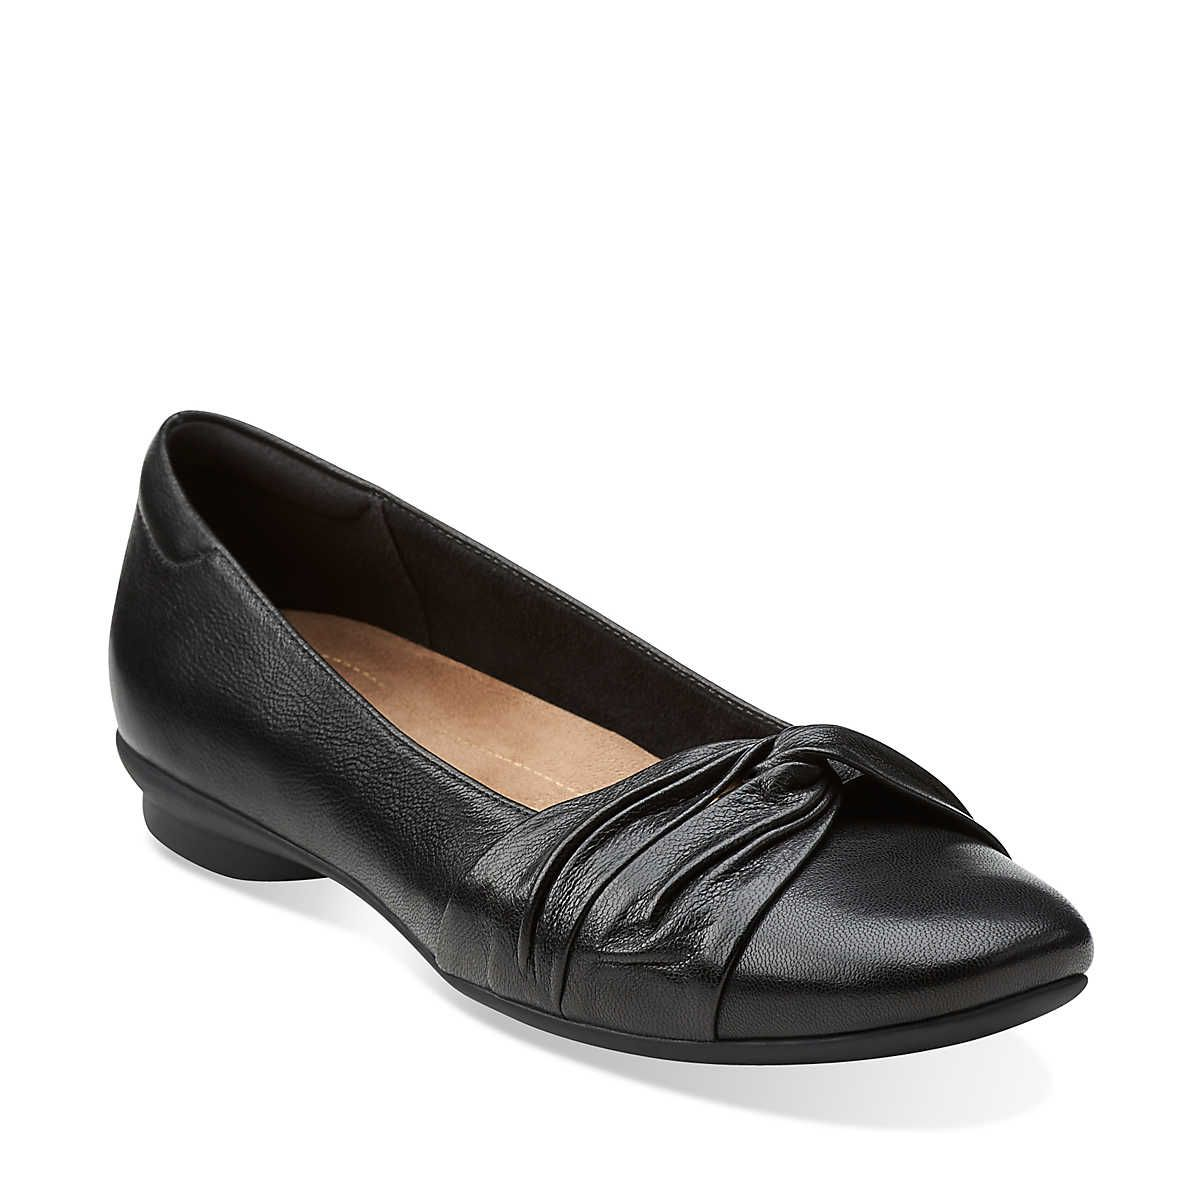 Candra Gleam in Black Leather - Womens Shoes from Clarks I need flats for  practicum!